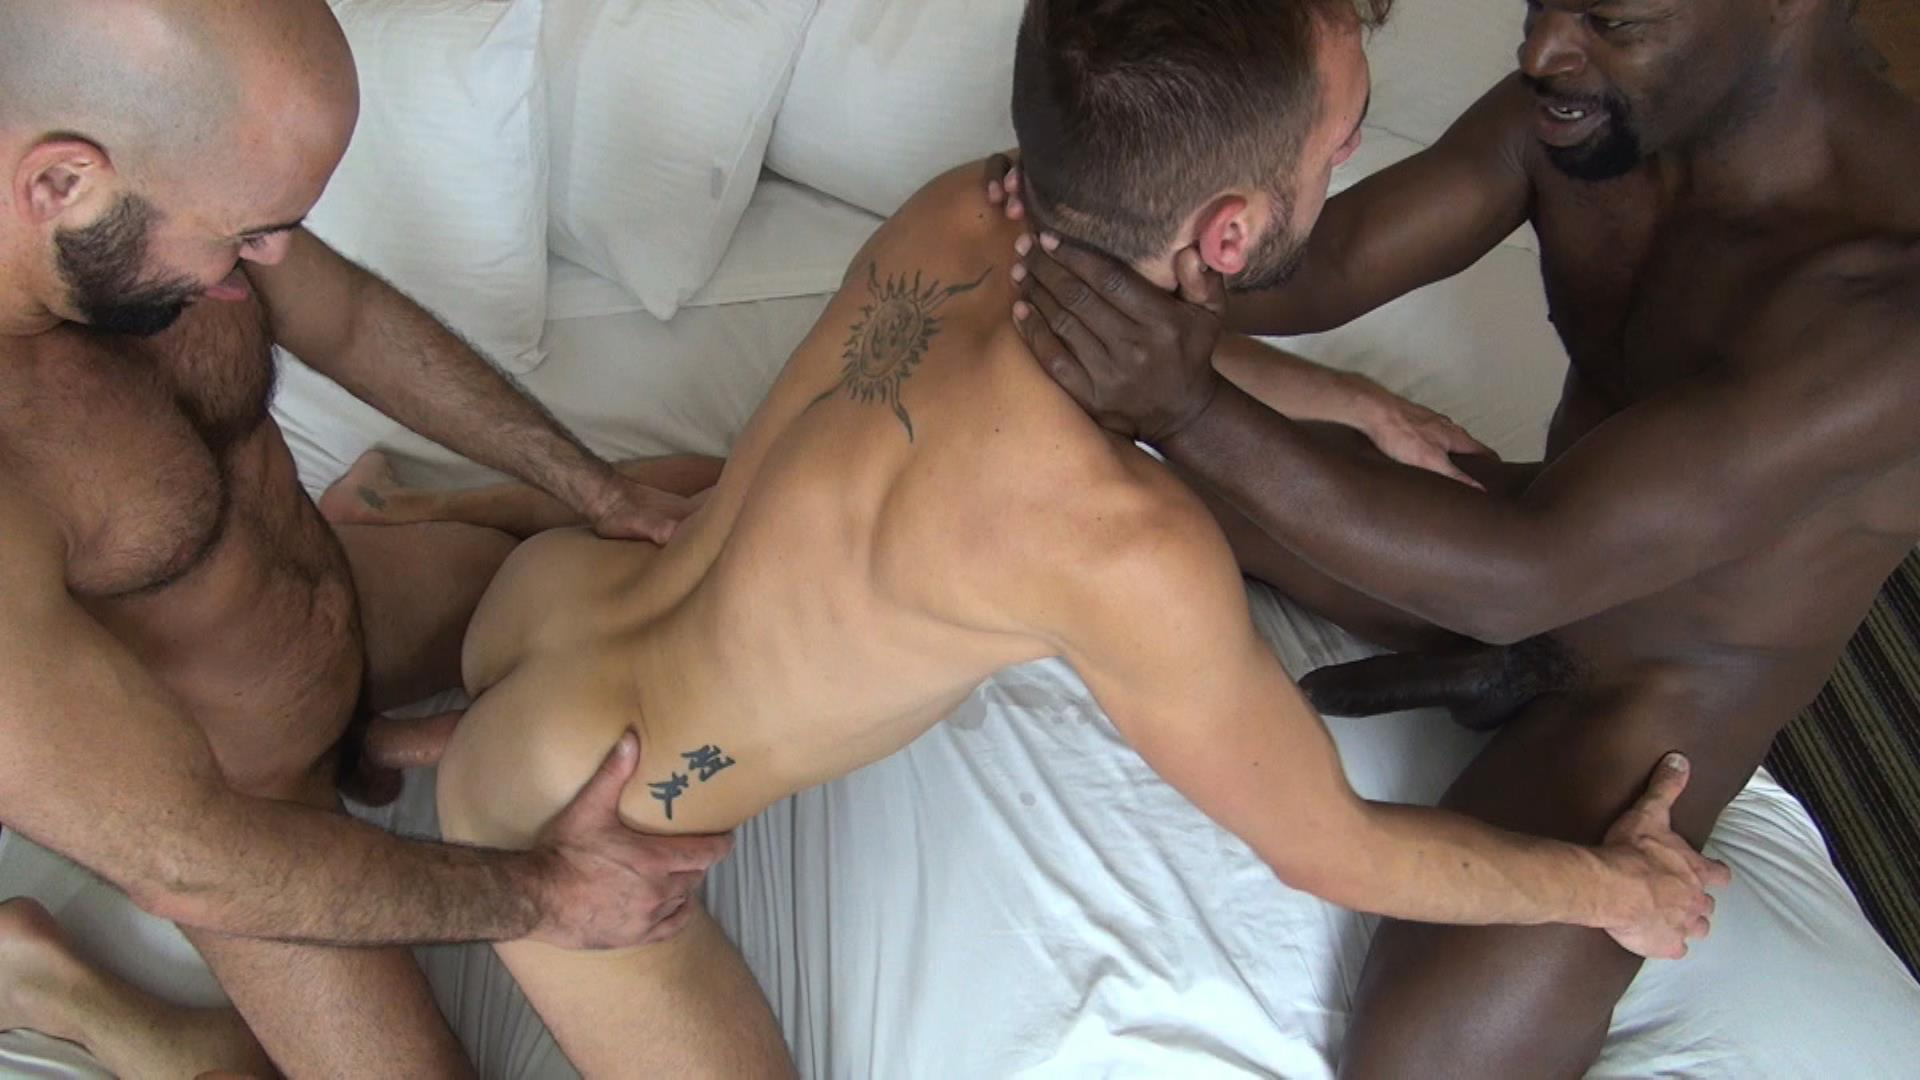 Raw-Fuck-Club-Adam-Russo-and-Cutler-X-and-Dylan-Strokes-Interracial-Bareback-Big-Black-Cock-Amateur-Gay-Porn-6 Interracial Boyfriends Adam Russo and Cutler X Barebacking Dylan Strokes